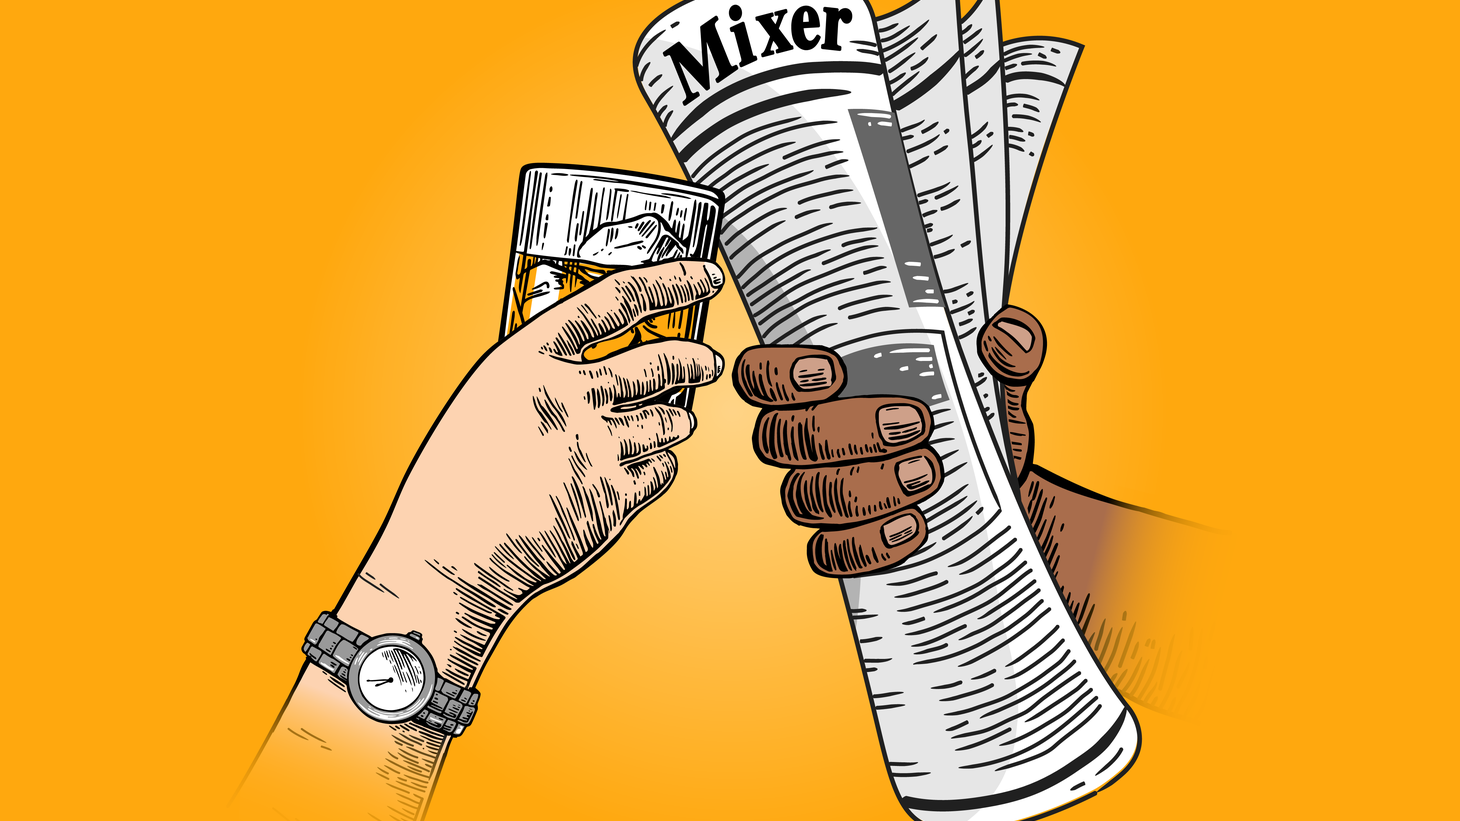 David Zahniser of The Los Angeles Times and Hillel Aron of the LA Weekly join KCRW's Steve Chiotakis for this week's Mixer.